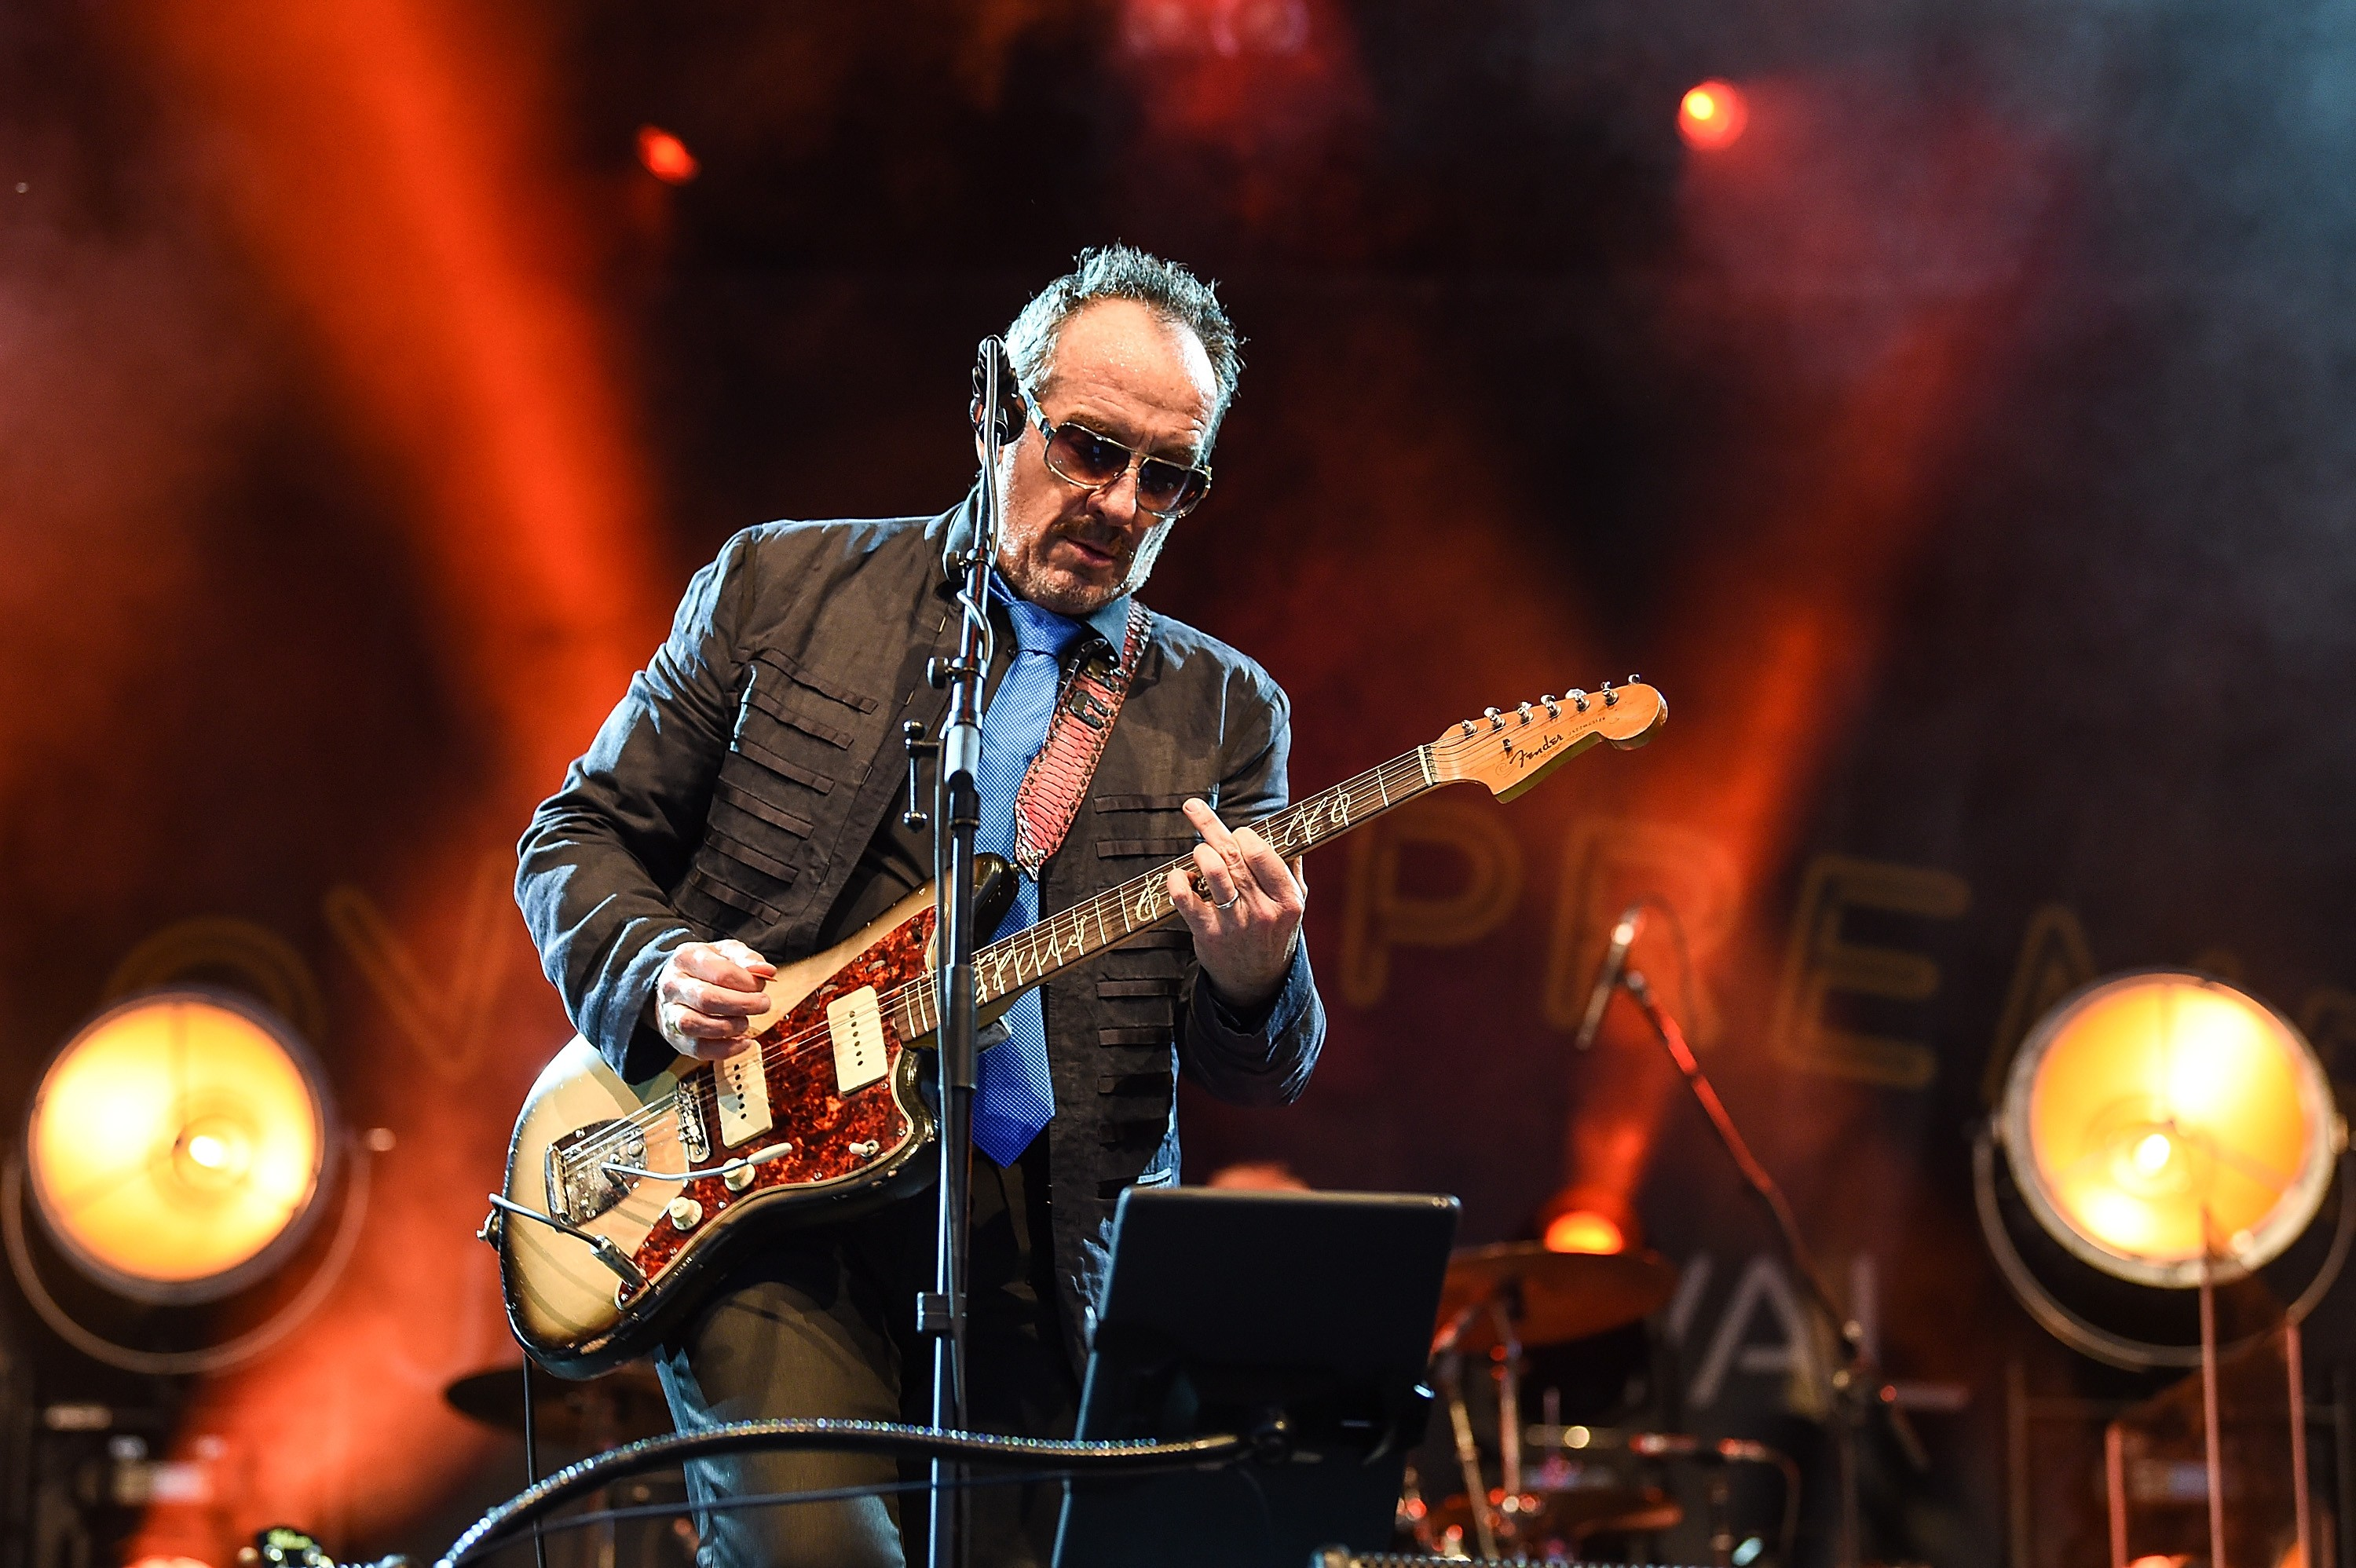 elvis-costello-the-imposters-perform-three-songs-cbs-this-morning-watch